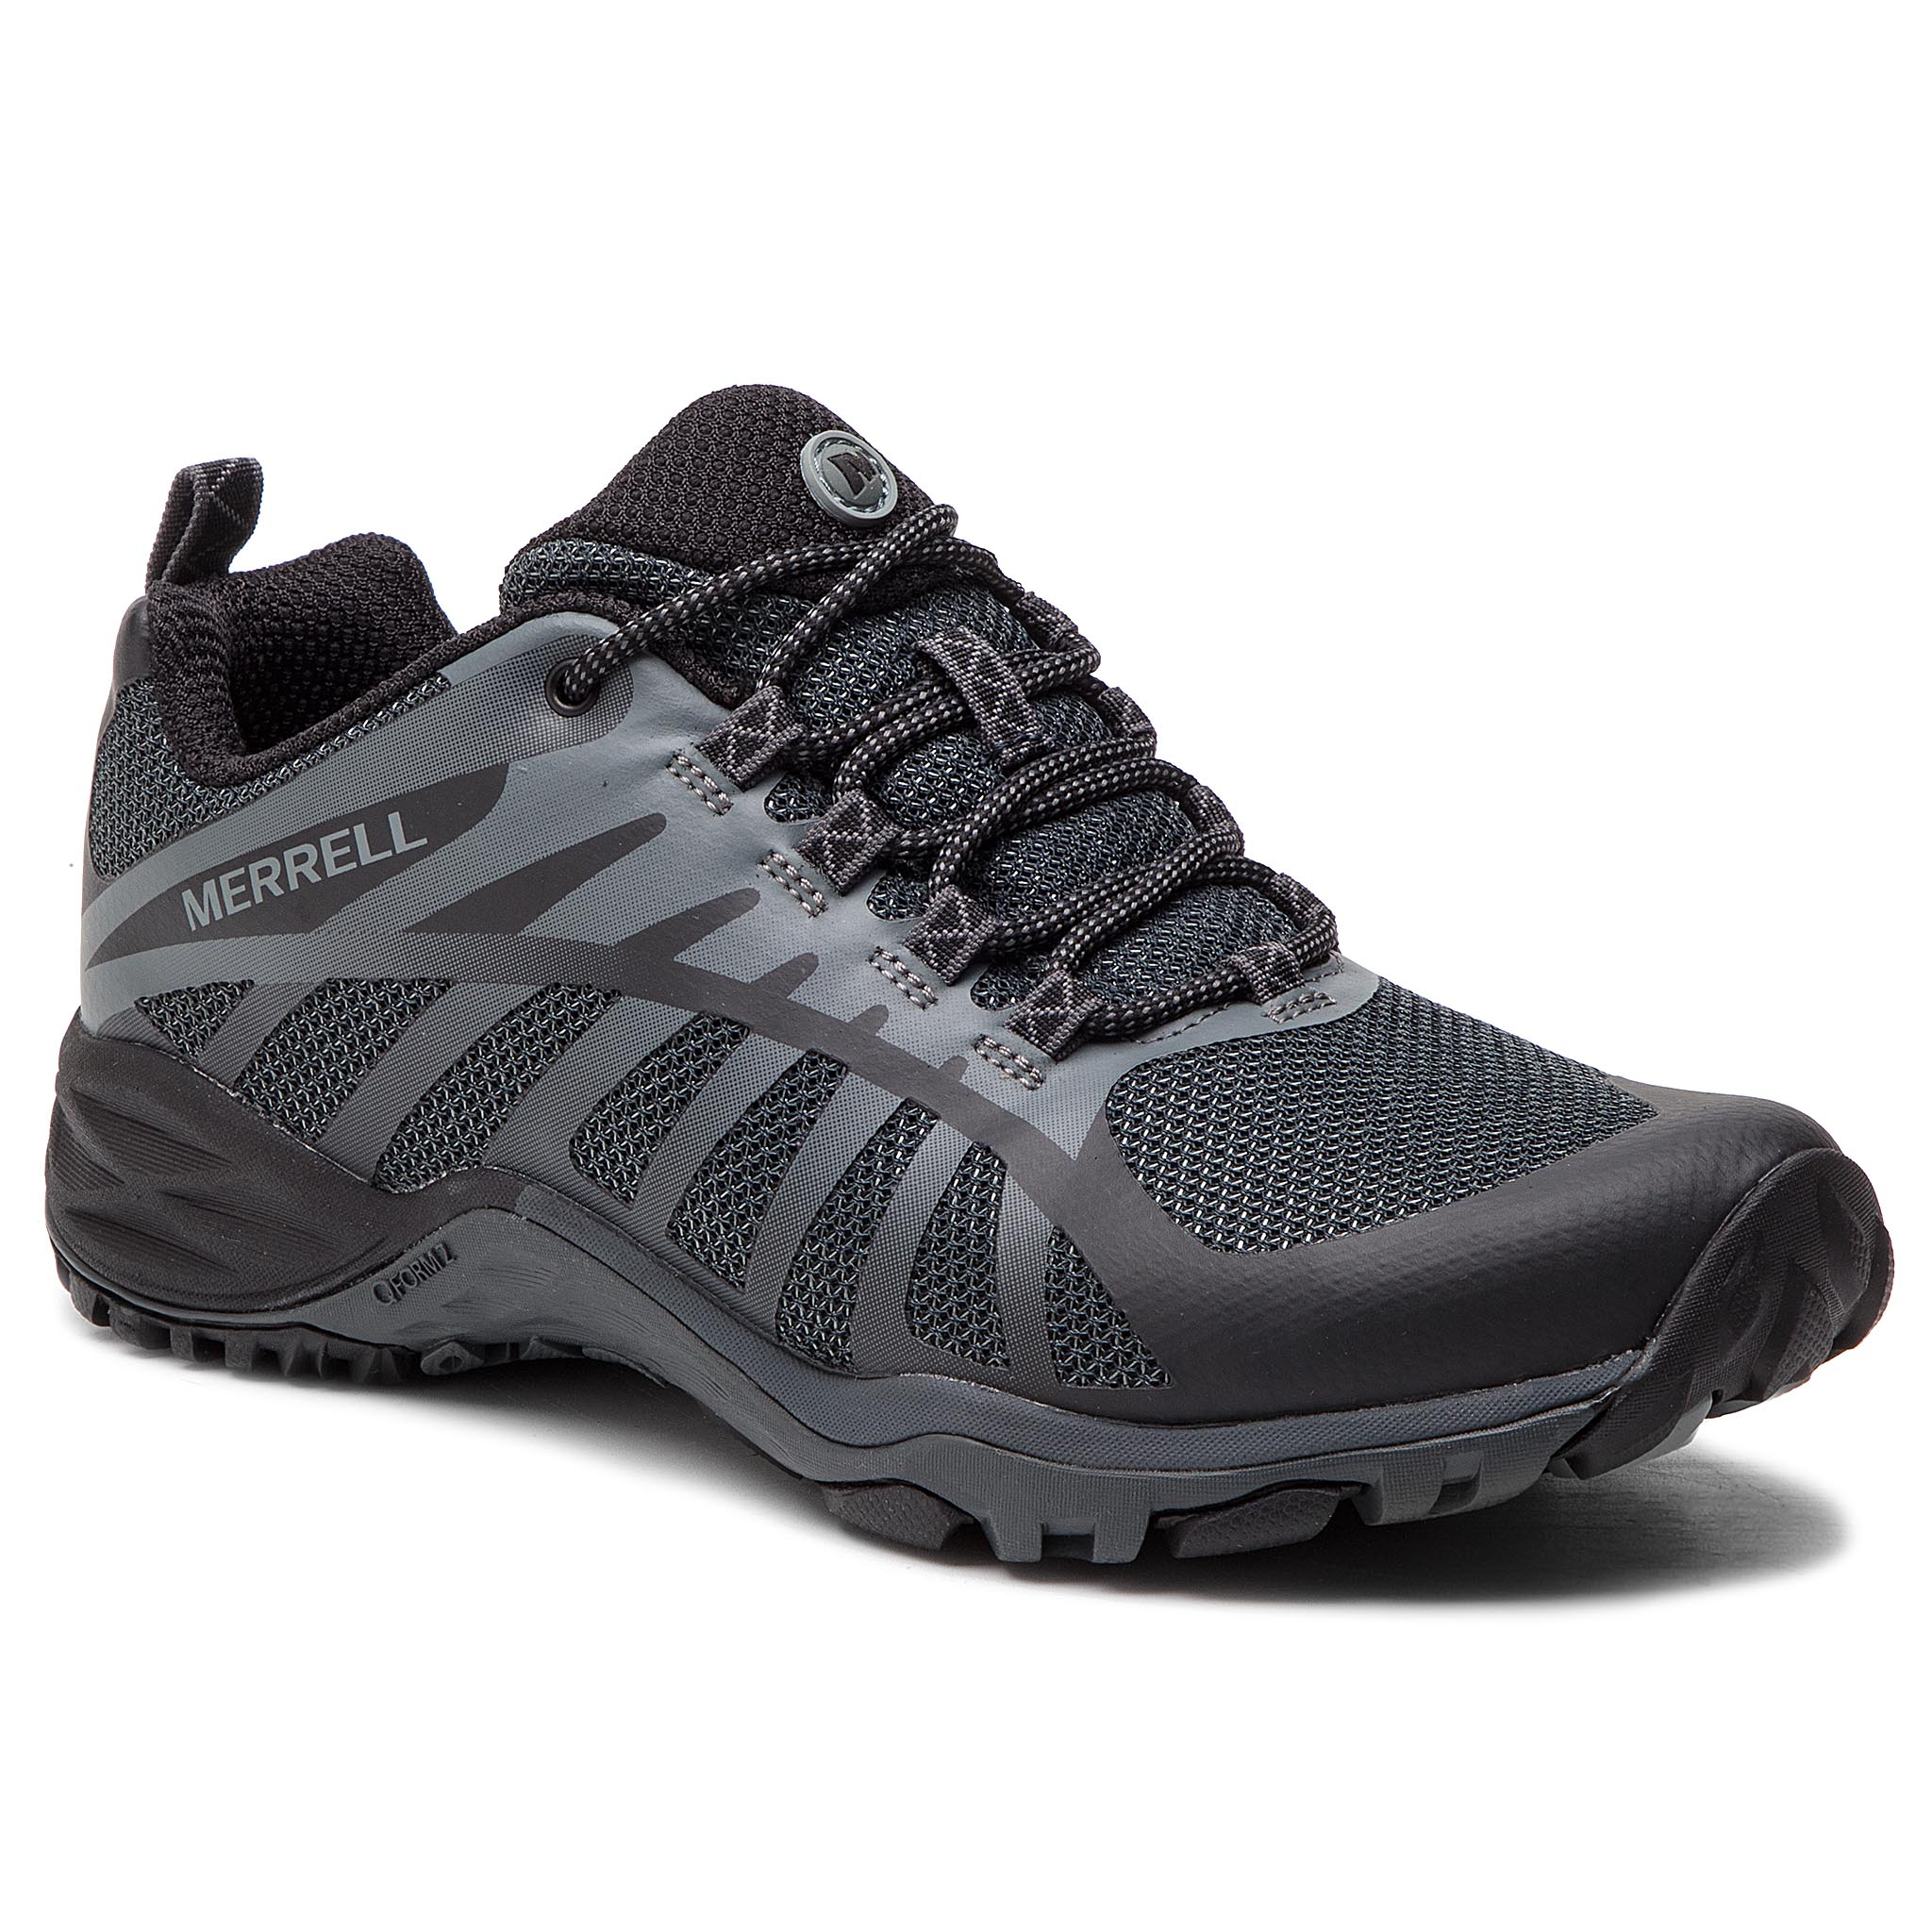 Trekkings Merrell - Siren Edge Q2 J84700 Black 2 imagine epantofi.ro 2021